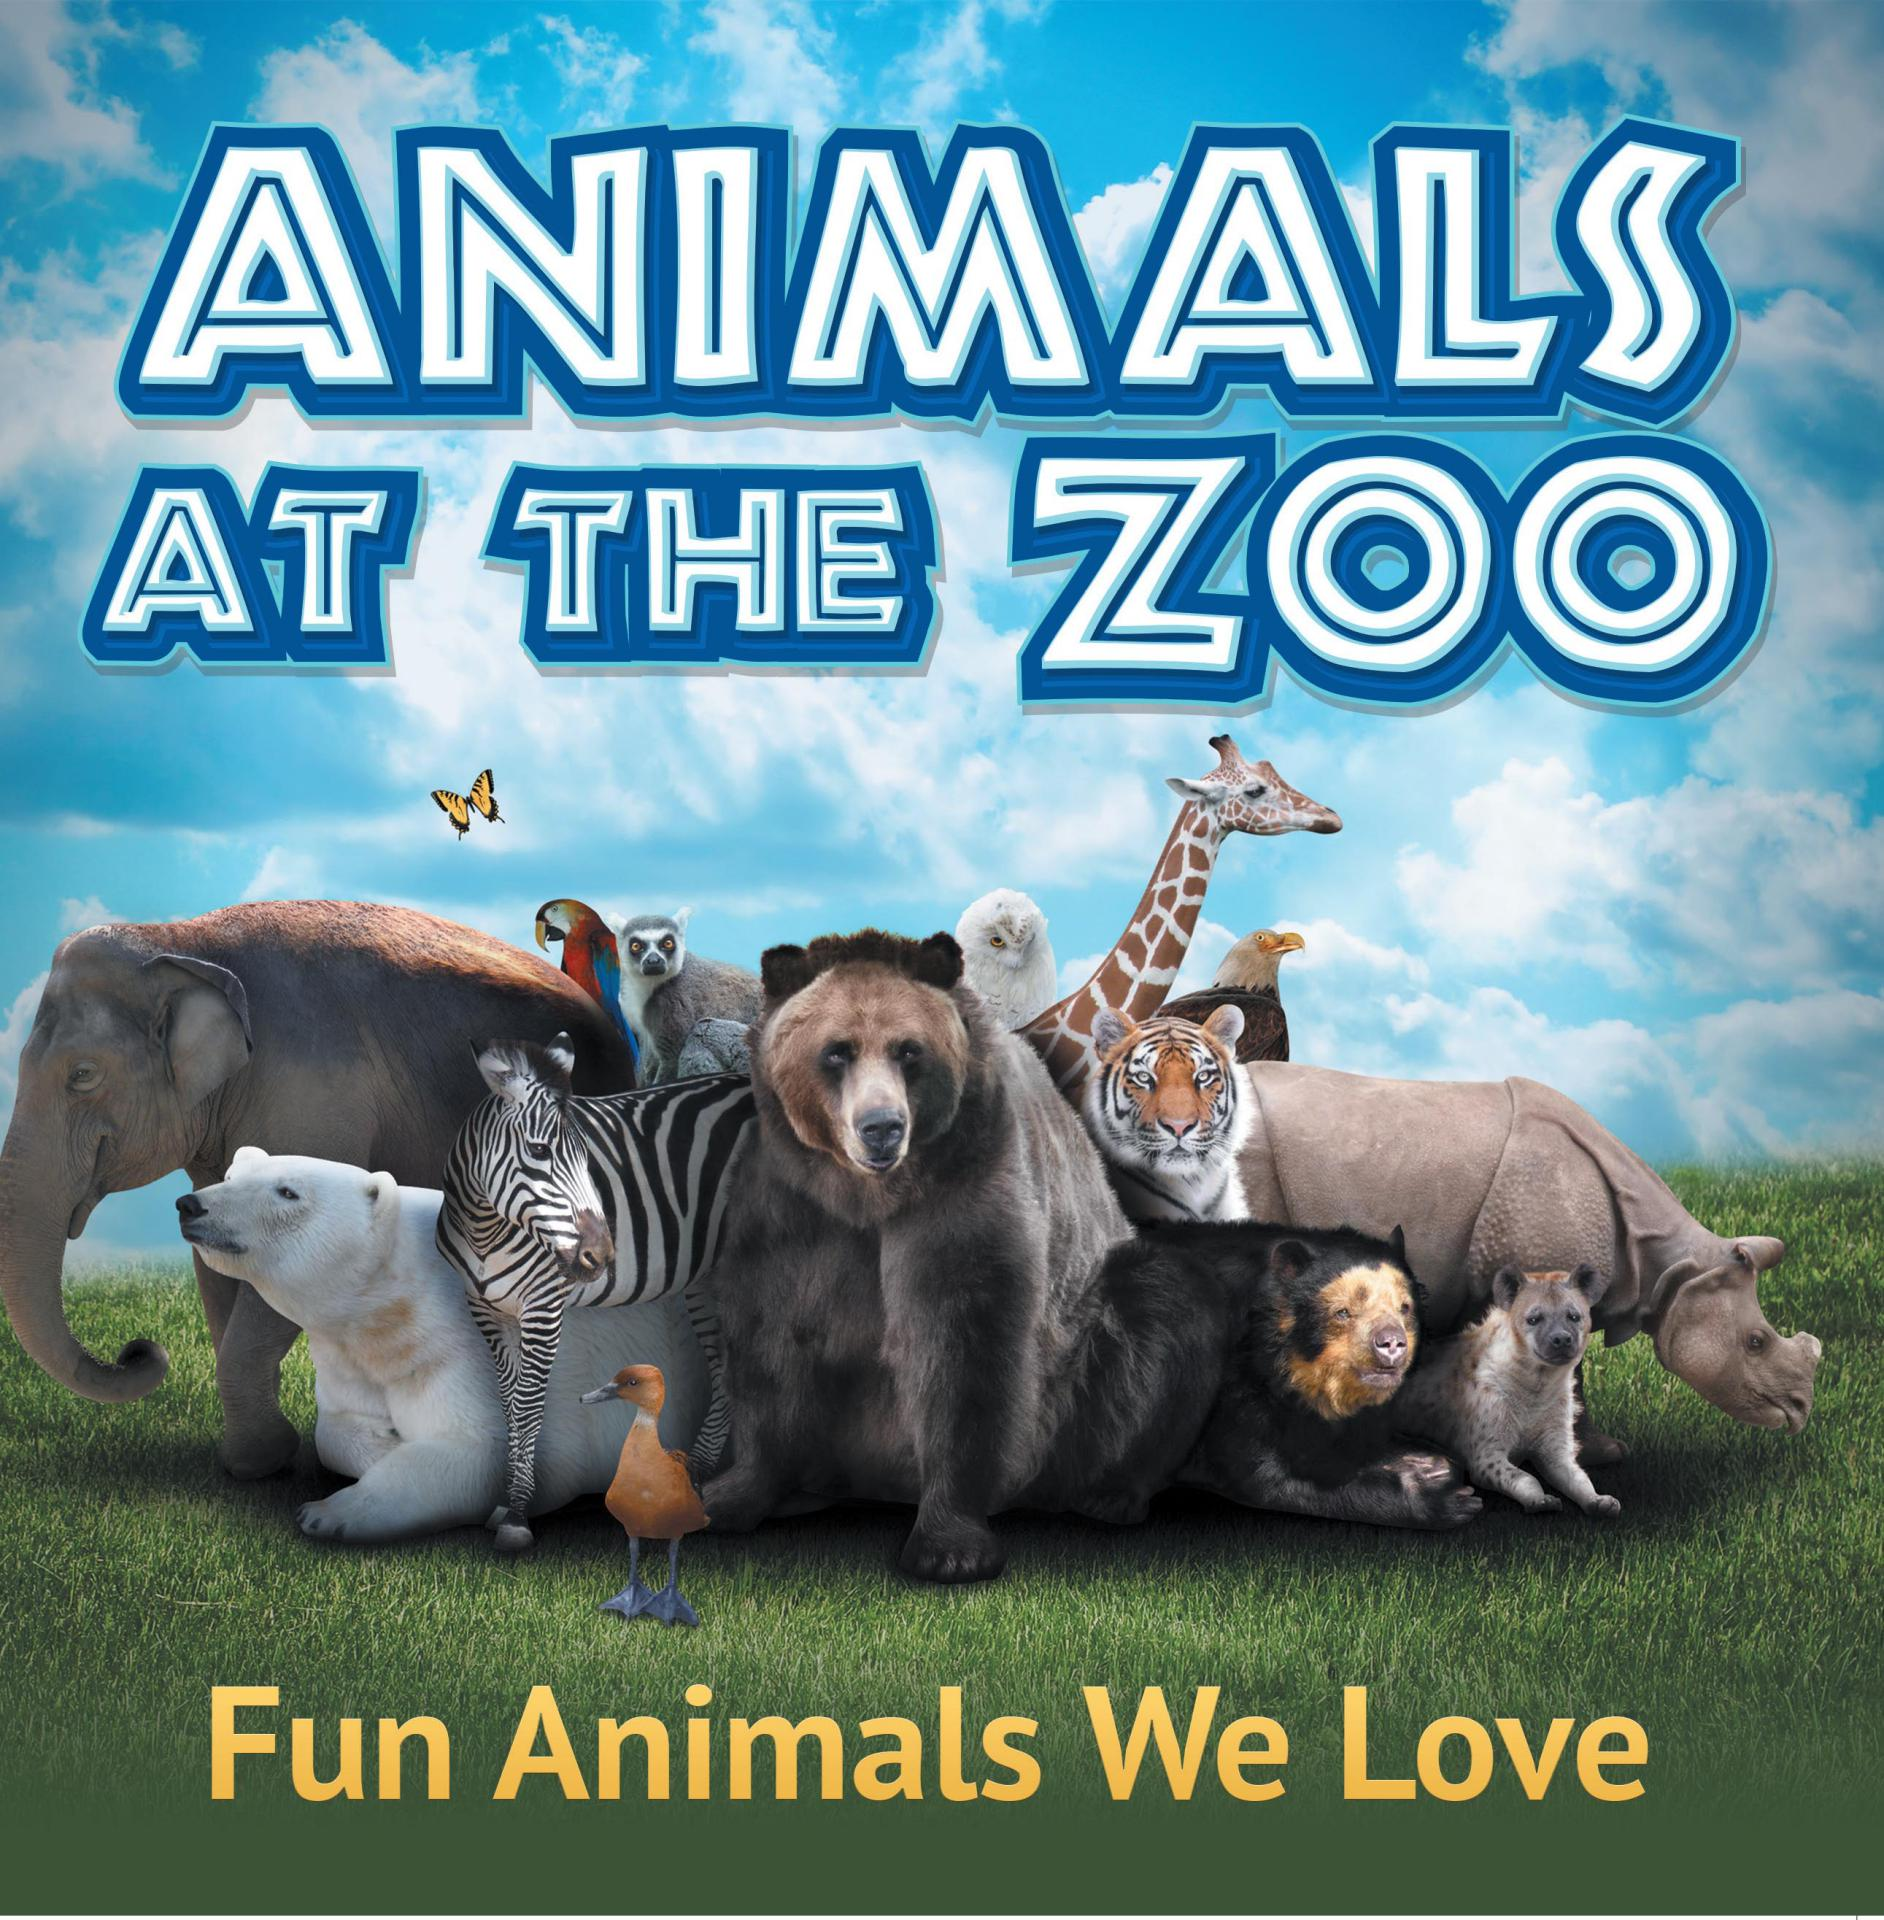 Animals at the Zoo: Fun Animals We Love Zoo Animals for Kids